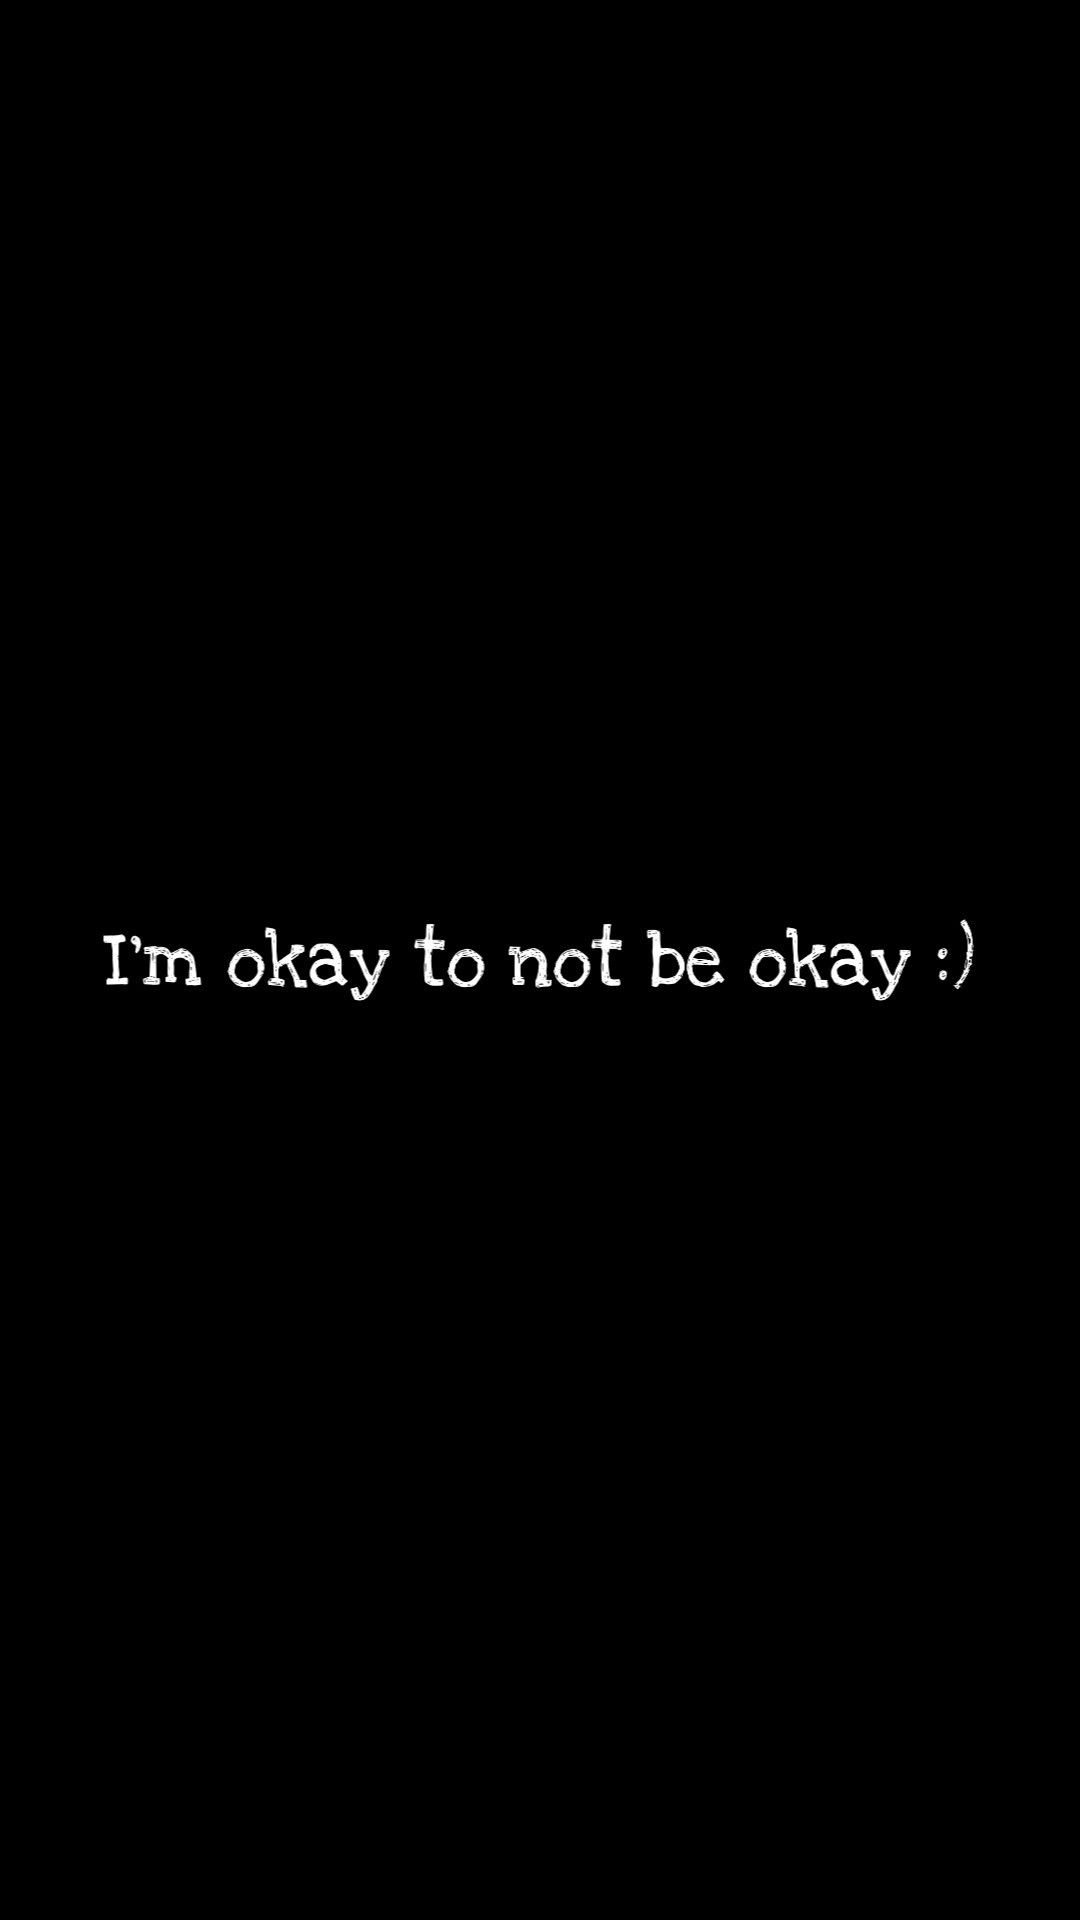 Wallpaper android I'm okay to not be okay :)